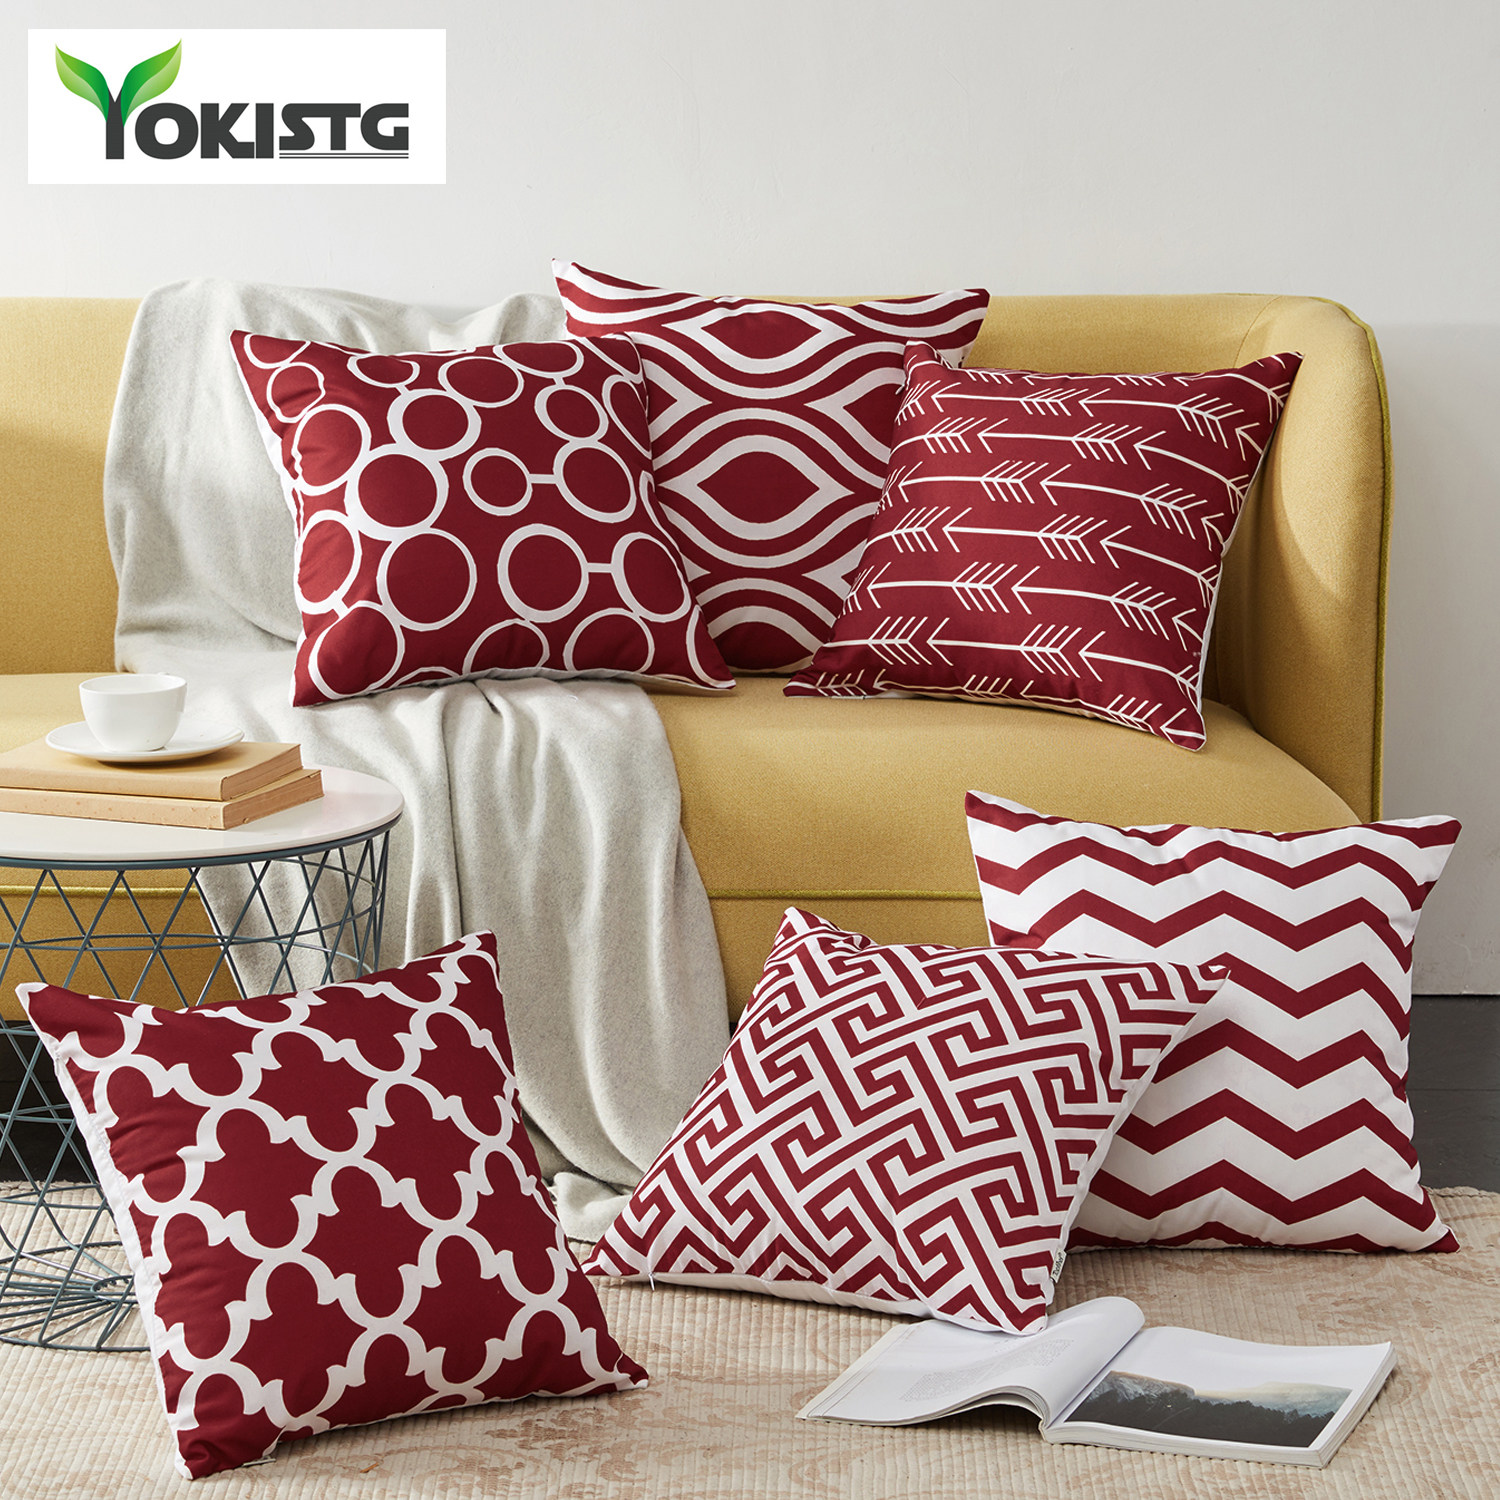 Nordic Style Geometric Decorative Cushion Covers Cotton Linen Throw Pillow Cover For Sofa Couch Chair Seat Bed Burgundy Color Cushion Cover Throw Pillow Coversdecorative Cushion Covers Aliexpress